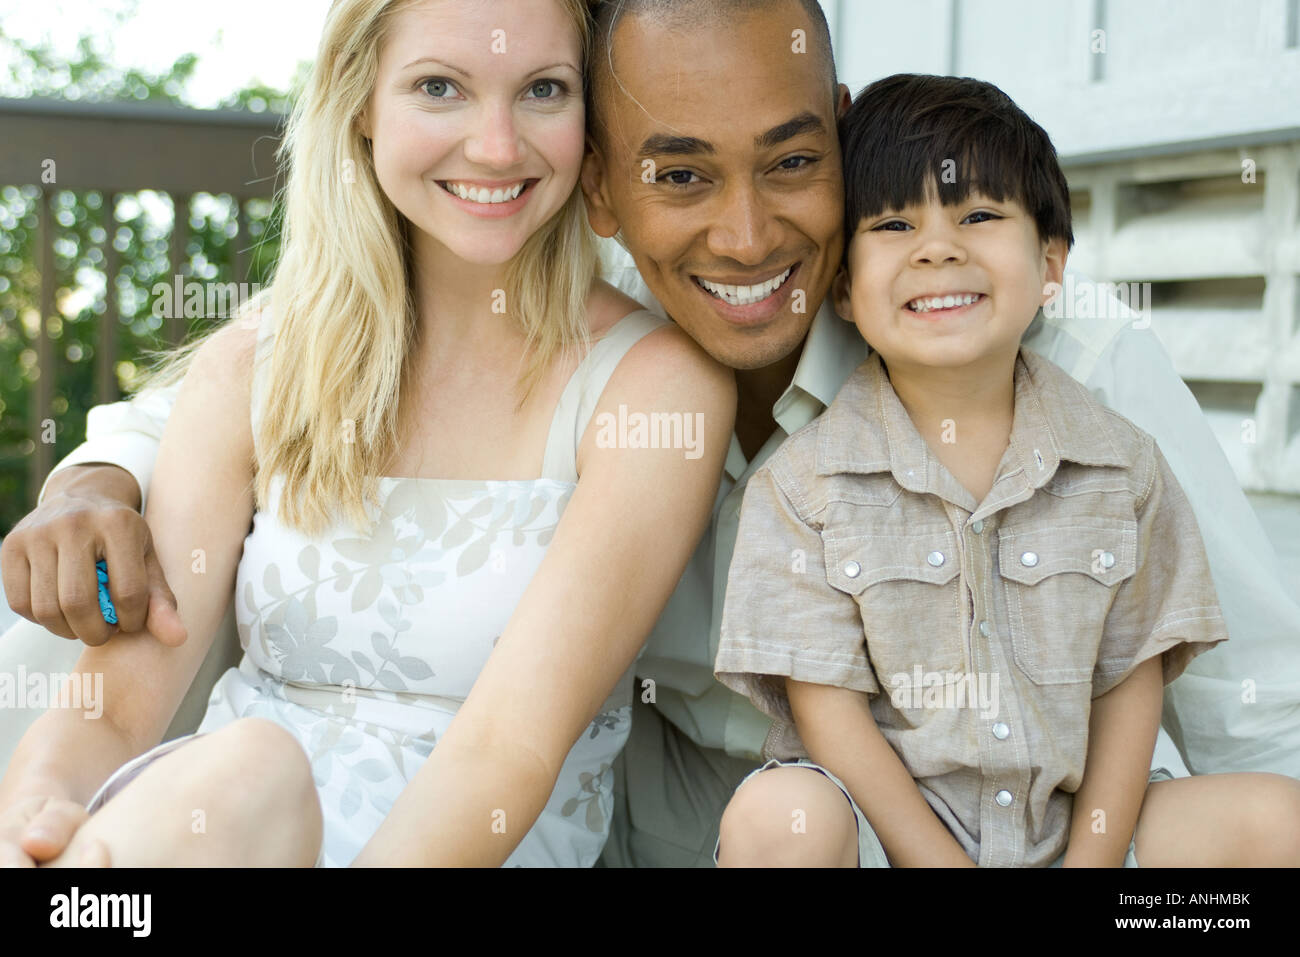 Family smiling at camera together, portrait - Stock Image